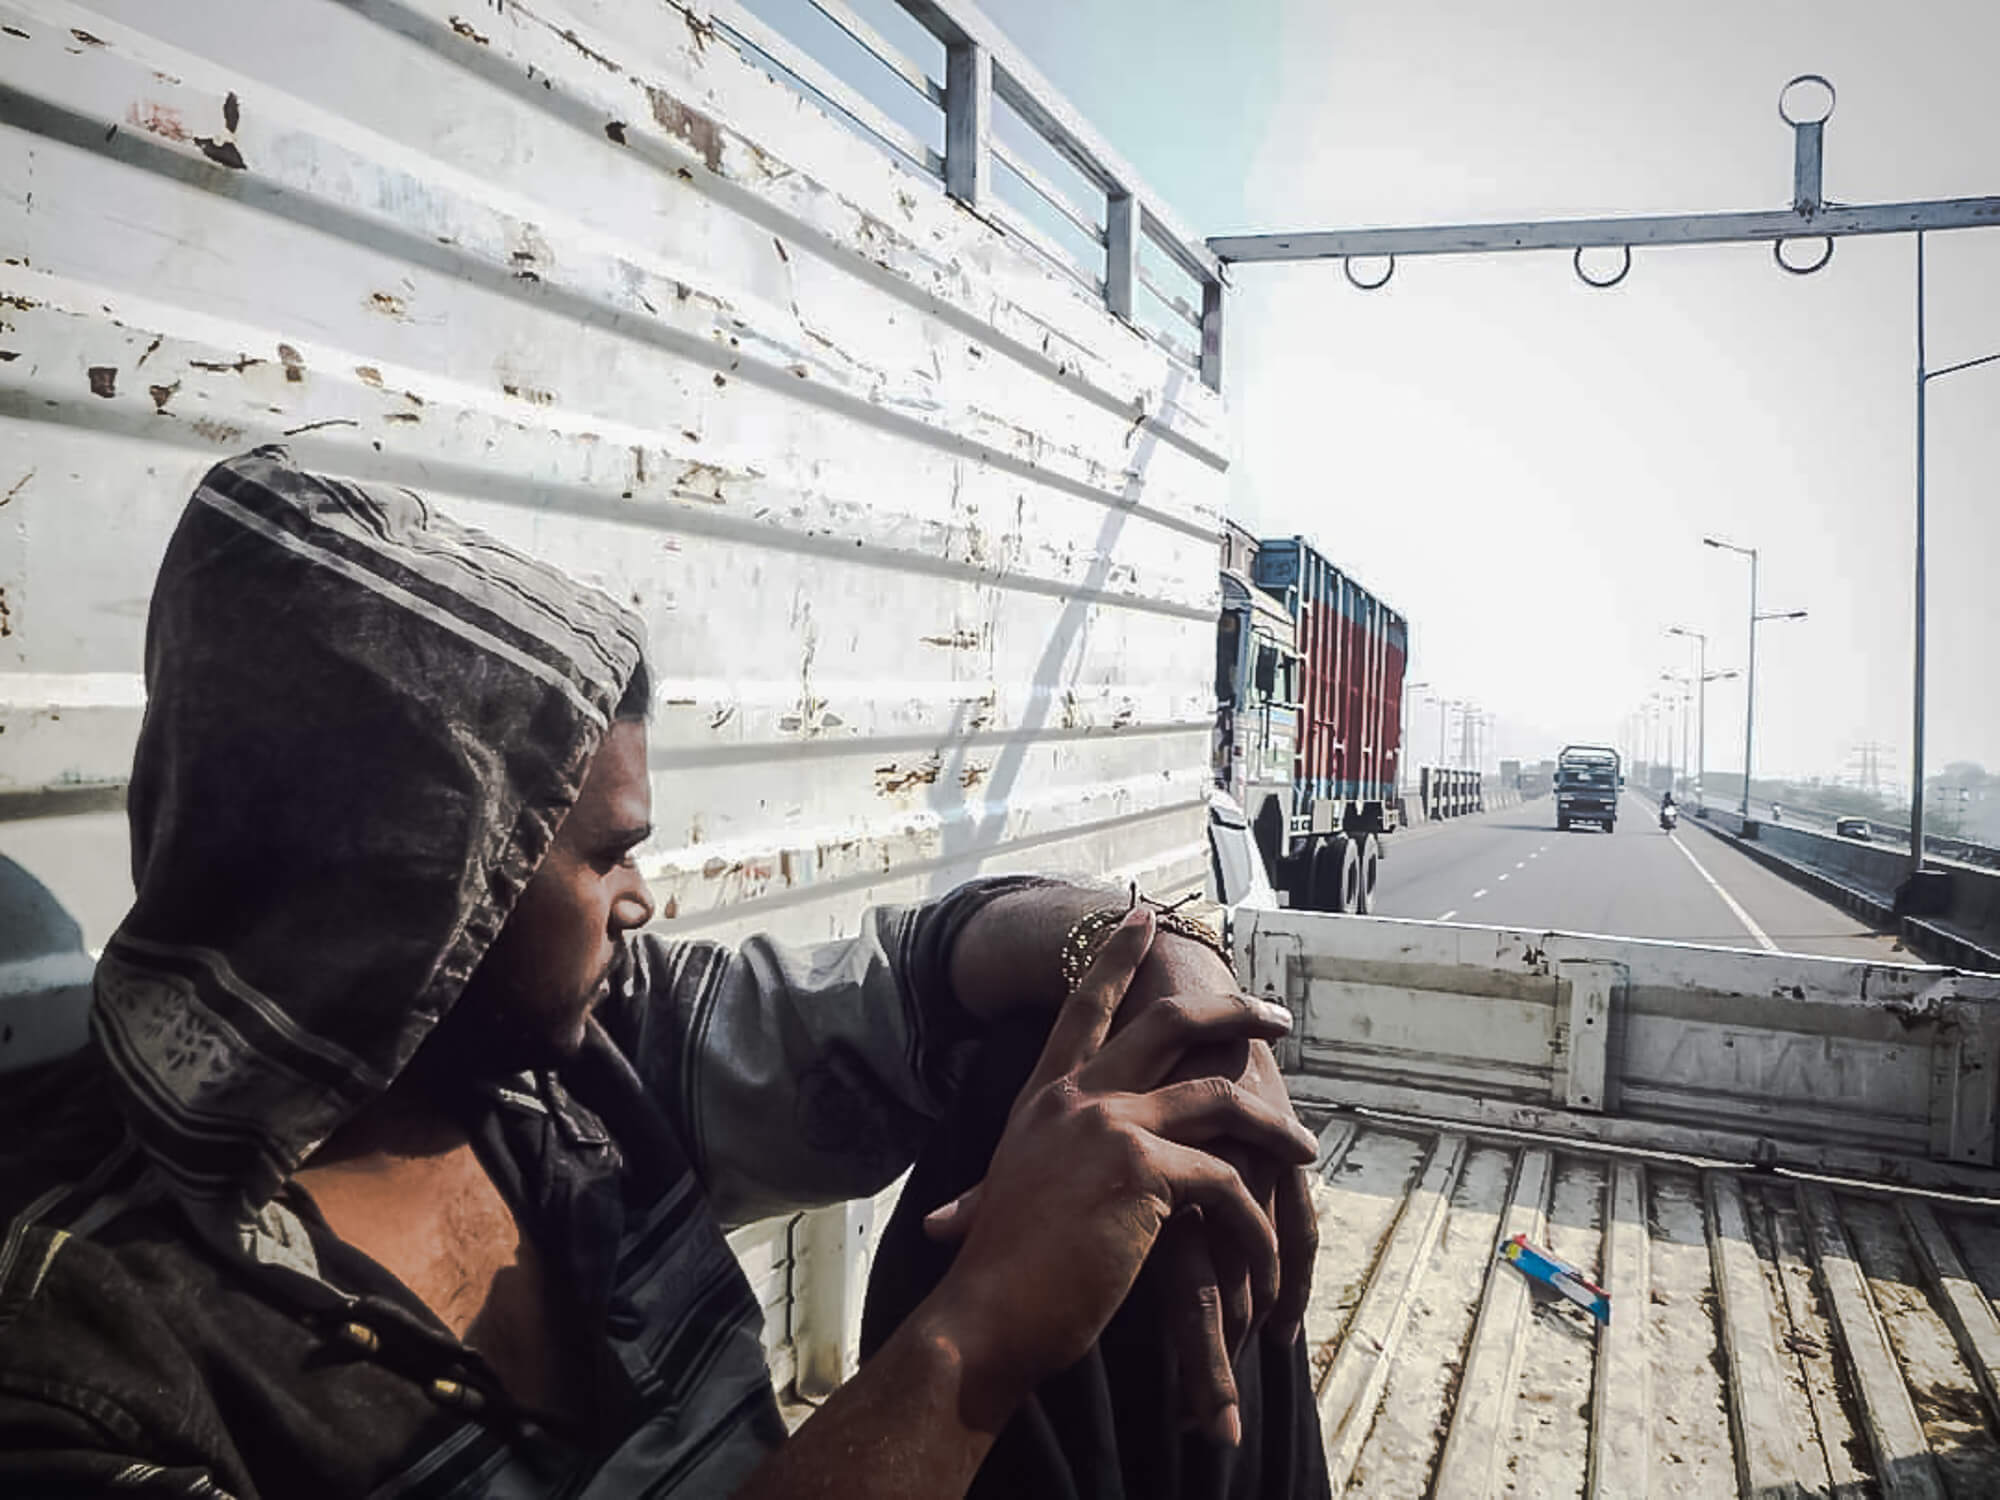 Hitchhiking in Sri Lanka in the back of a truck trailer